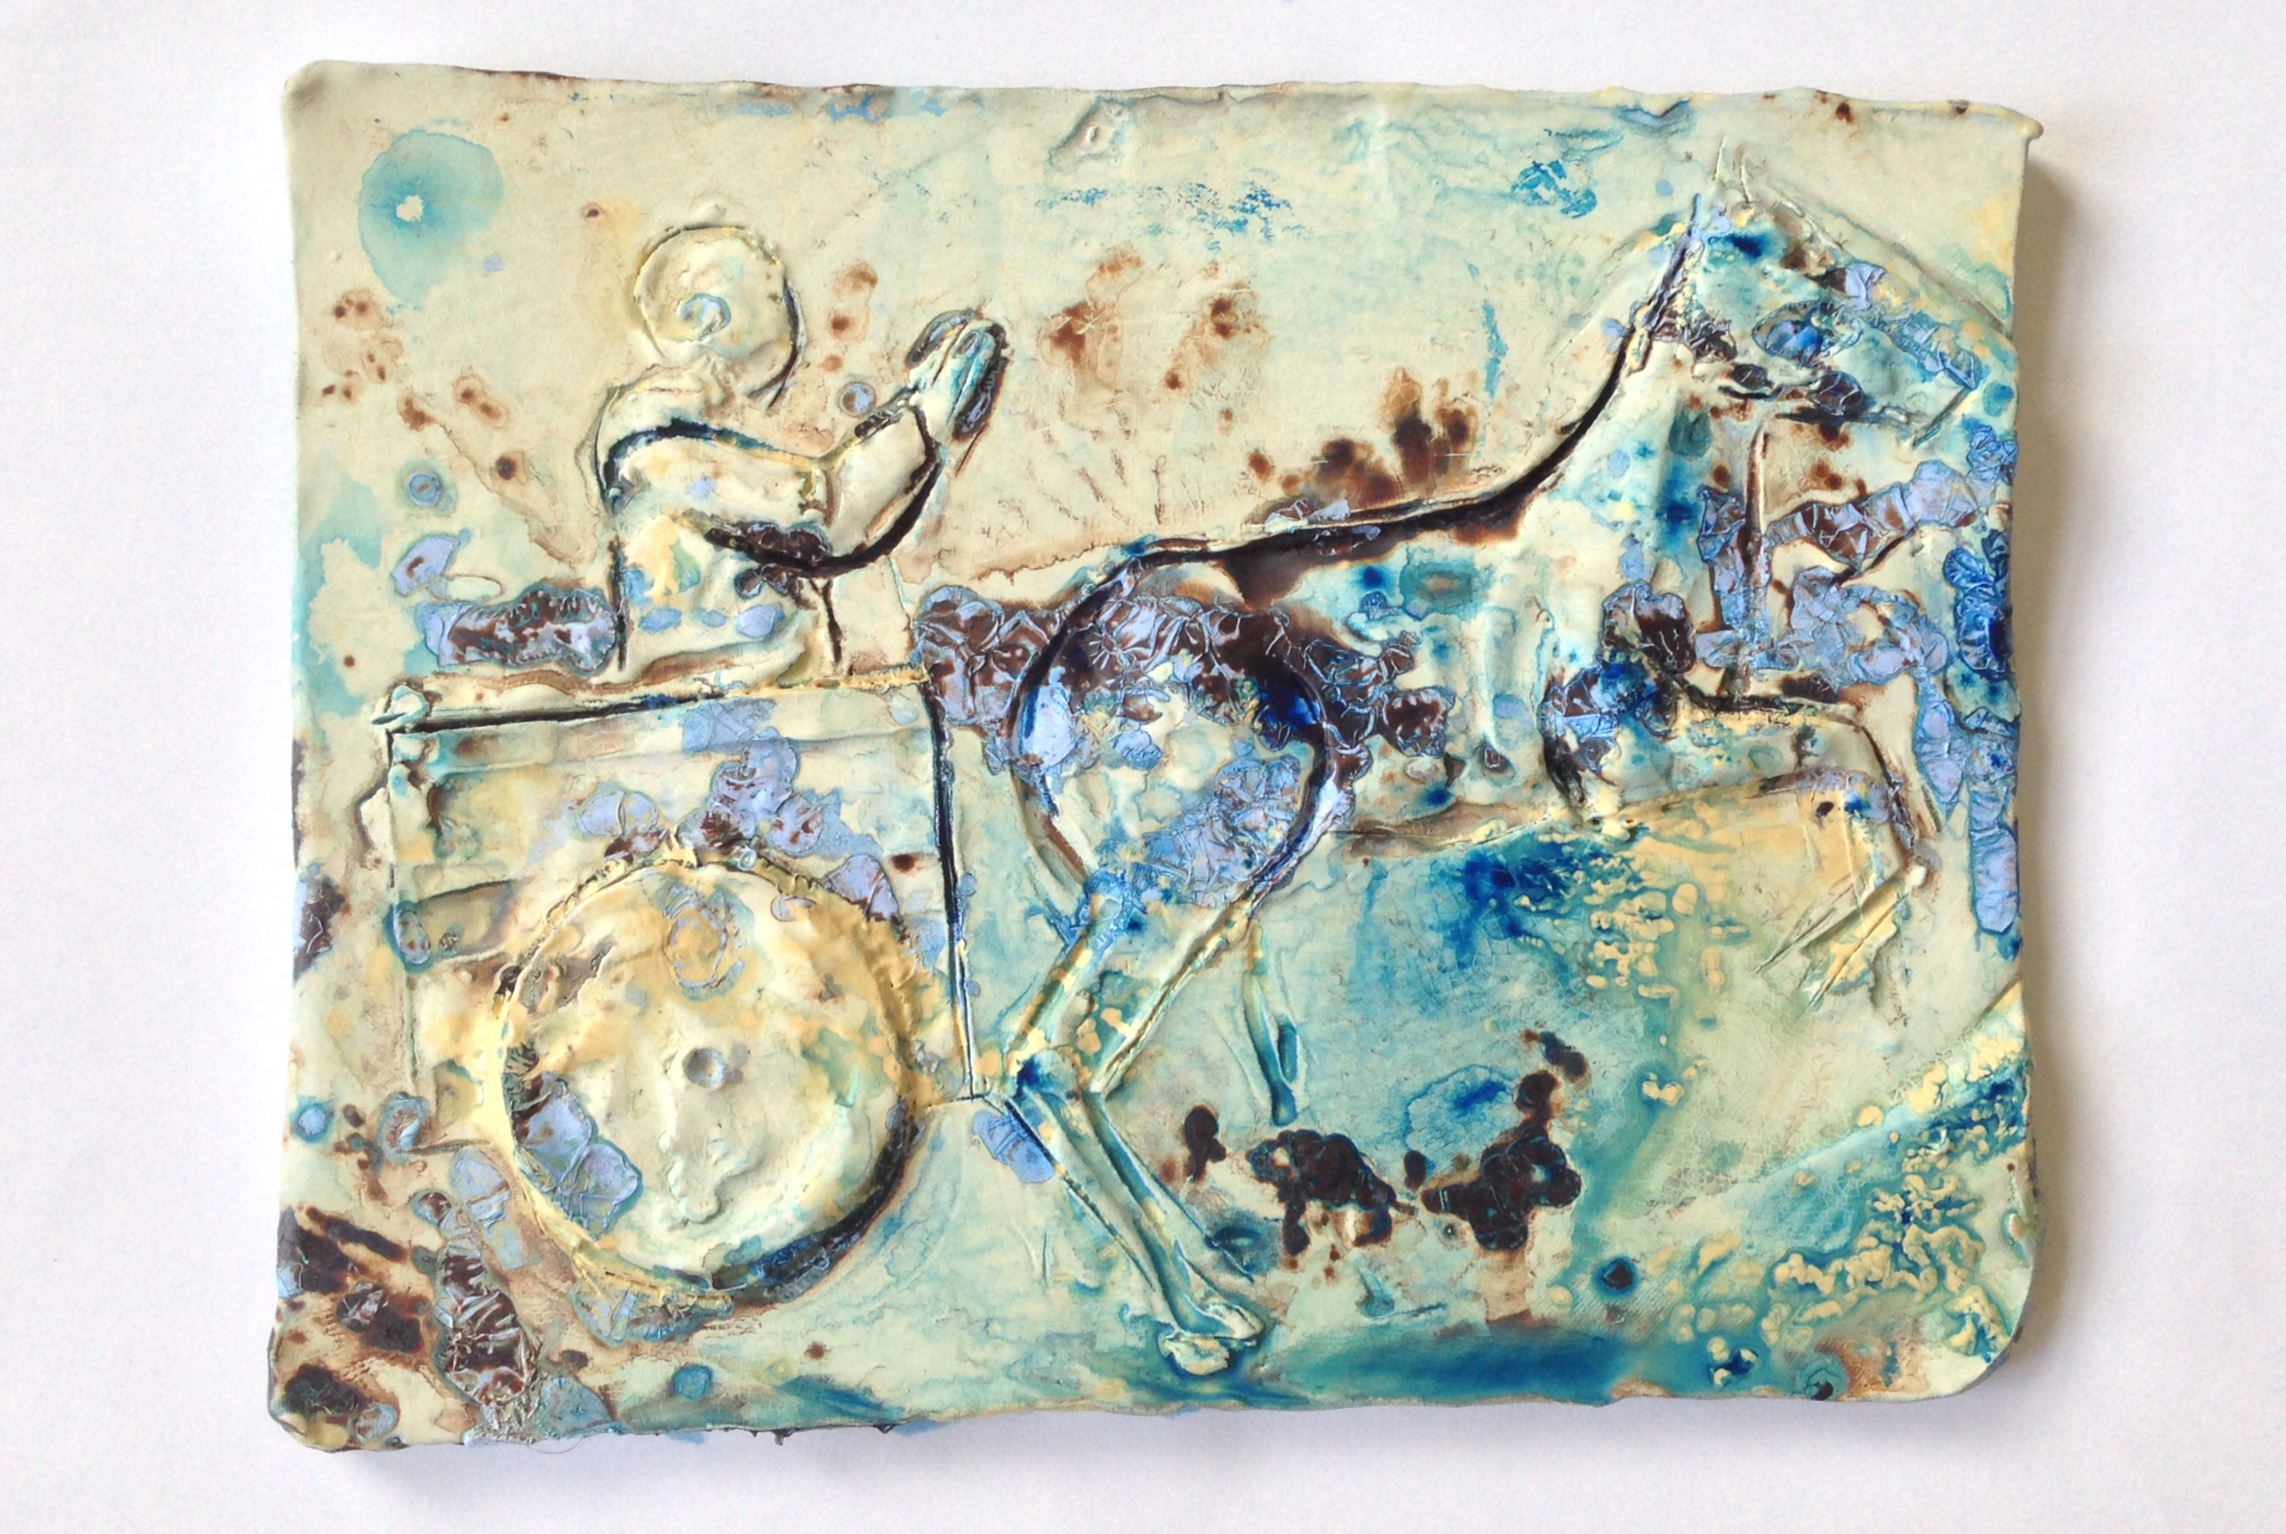 """Chariot, Ceramic and Acrylic, 2014, 8"""" x 7"""", $1,000"""